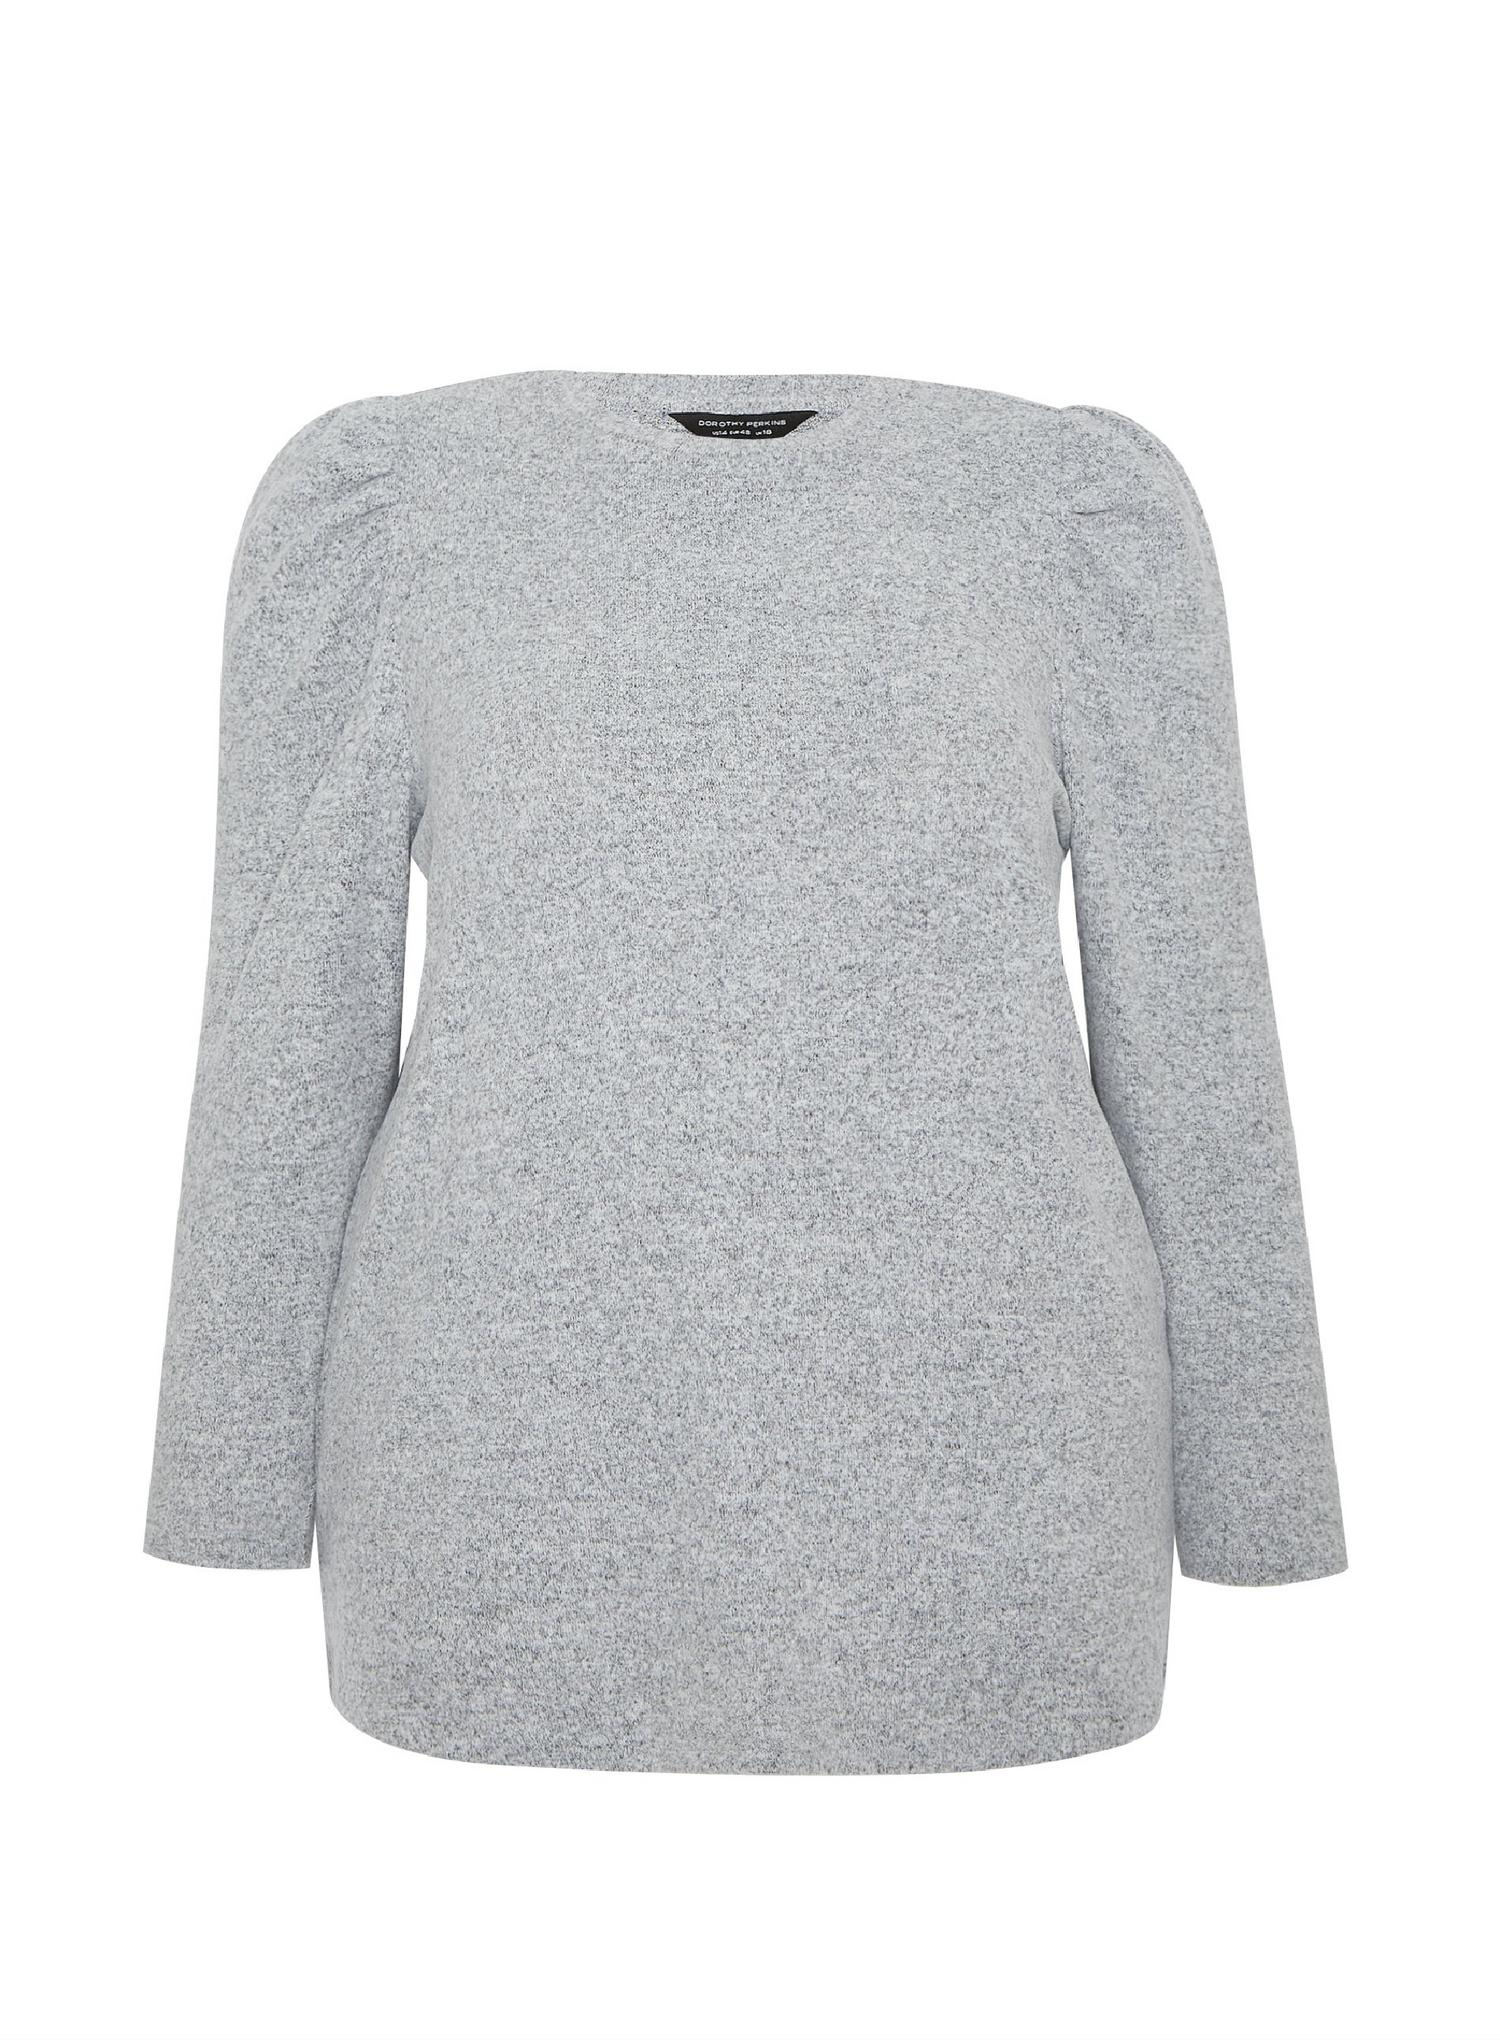 131 Curve Grey Brushed Puff Sleeve T-Shirt image number 4